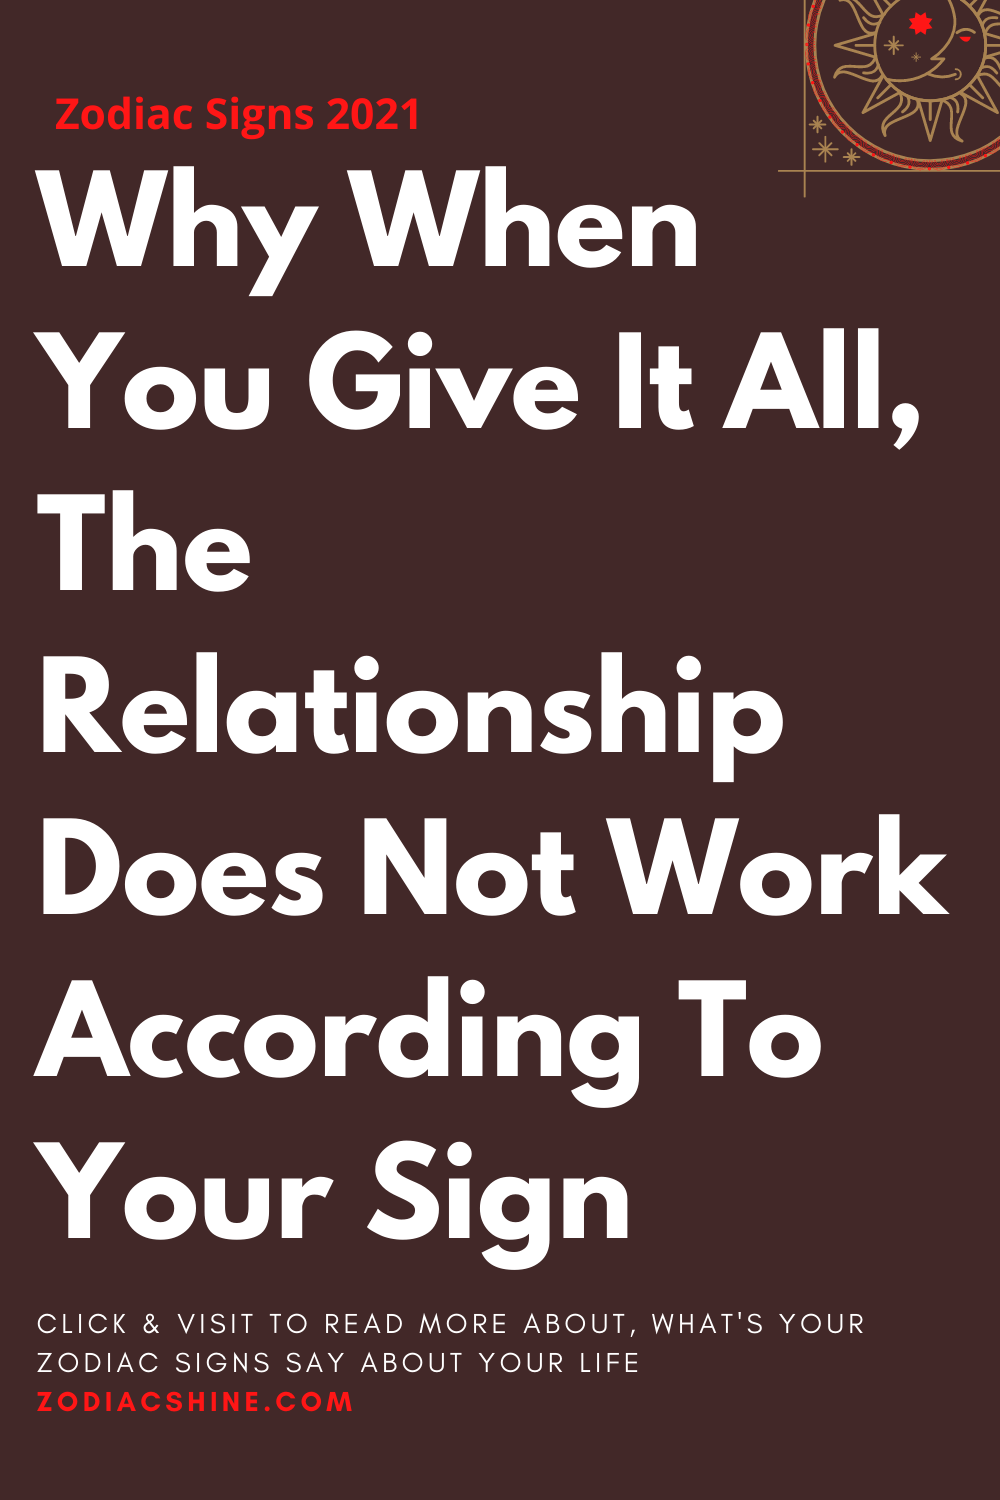 Why When You Give It All The Relationship Does Not Work According To Your Sign